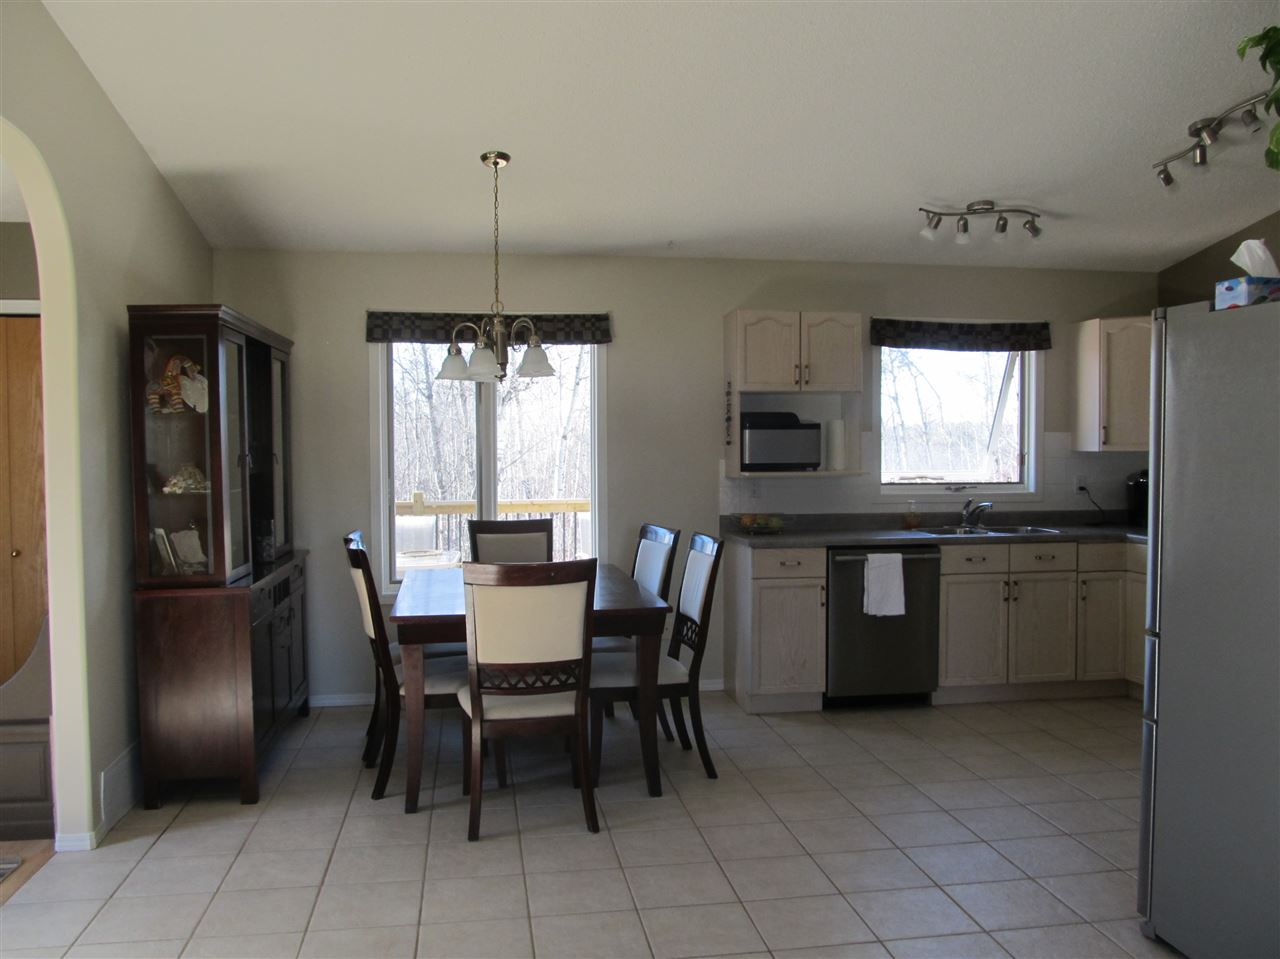 Photo 7: 57016 RR 233: Rural Sturgeon County House for sale : MLS(r) # E4072040